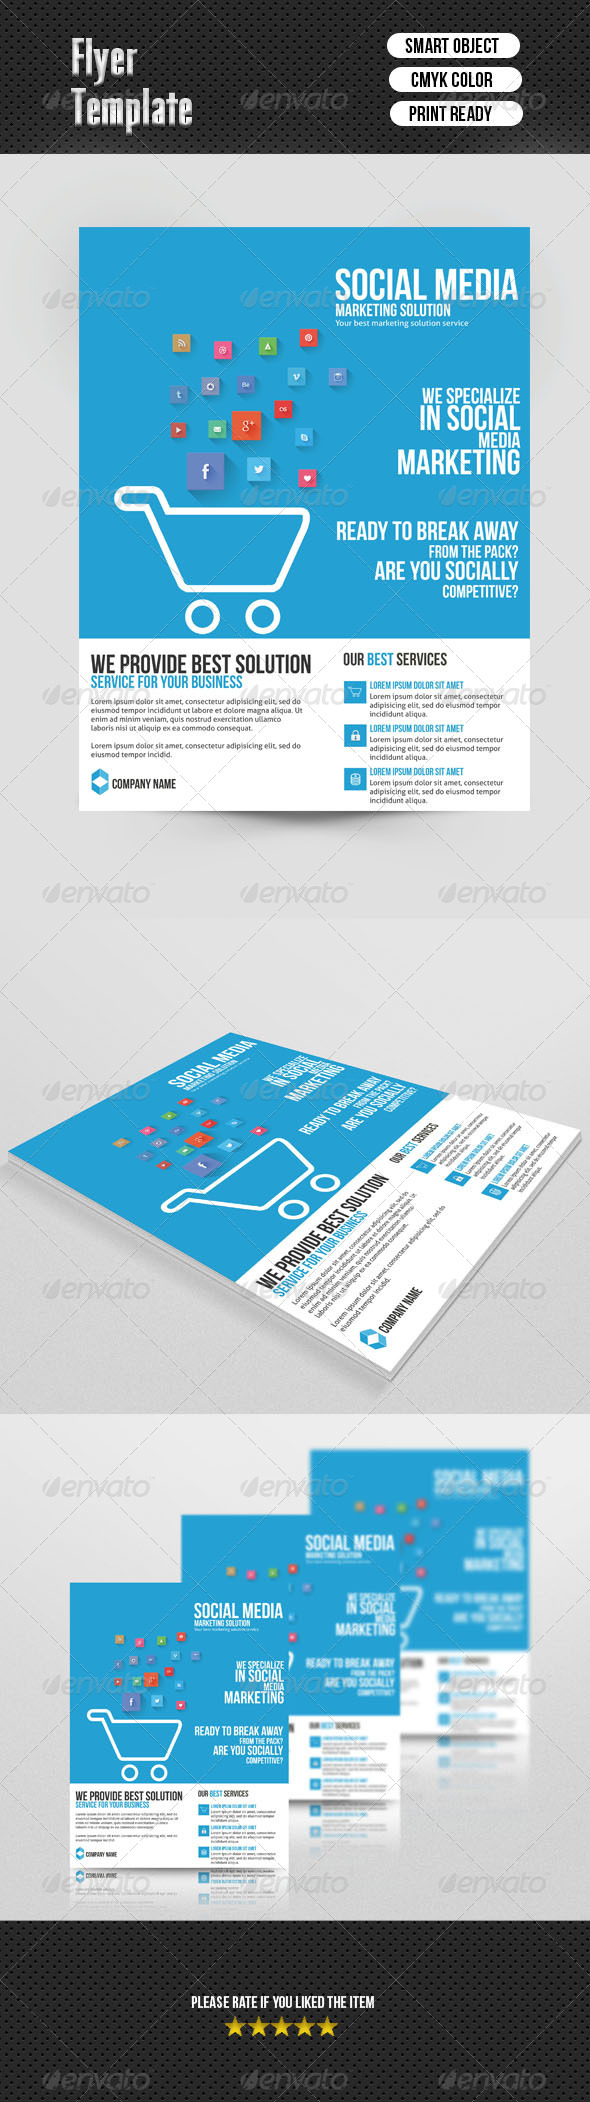 Social Media Marketing Flyer - Corporate Flyers